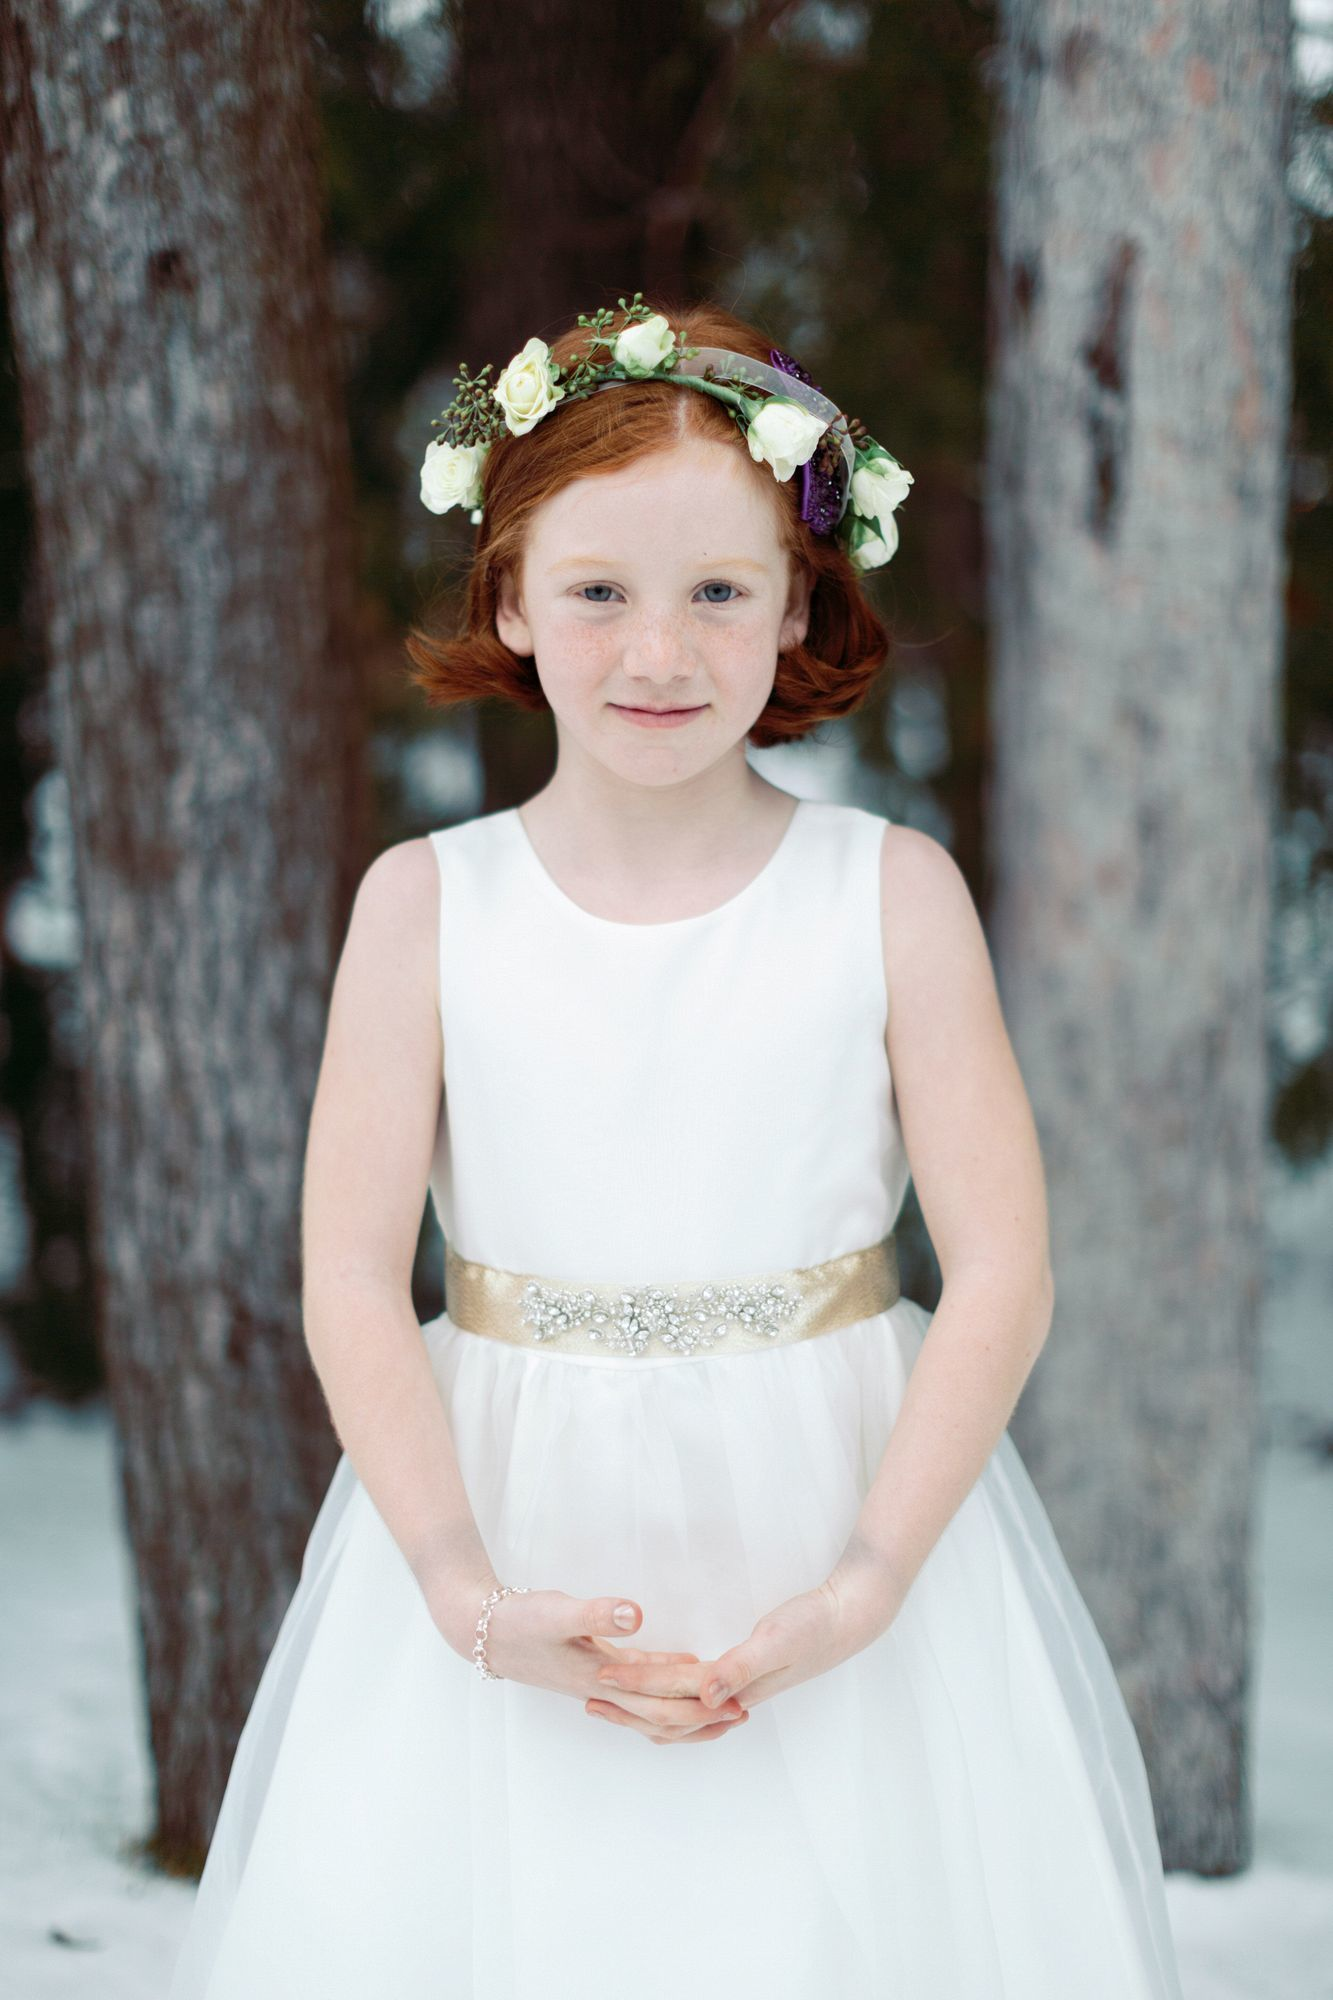 Although cold outside this winter wedding warmed hearts everywhere flower girl wearing floral crown photography blaine siesser photographer izmirmasajfo